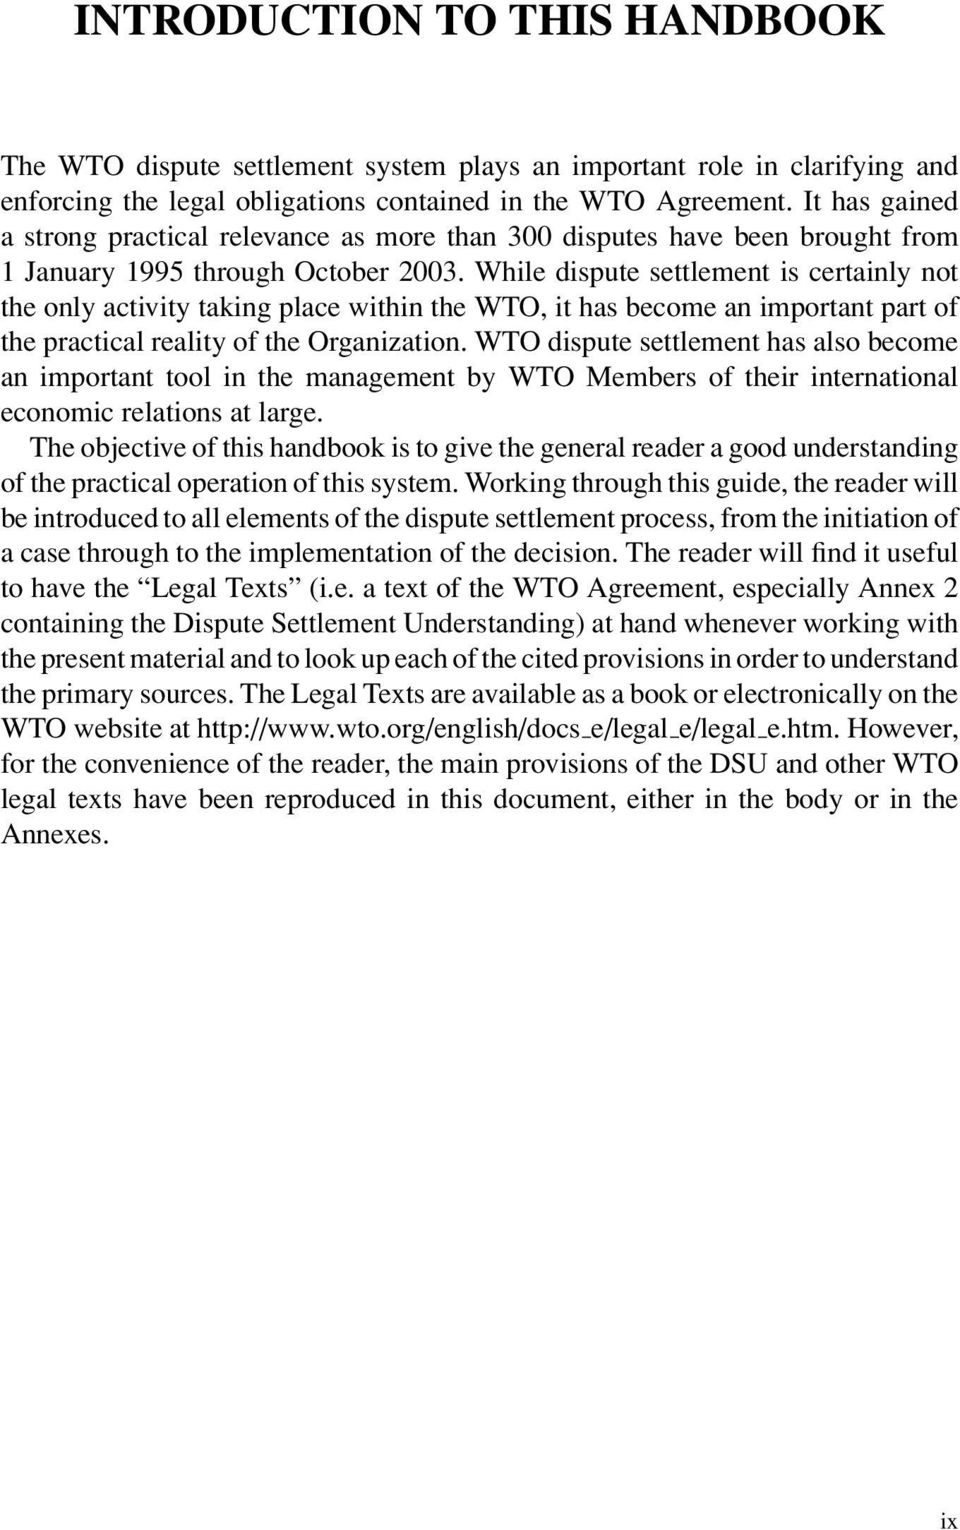 While dispute settlement is certainly not the only activity taking place within the WTO, it has become an important part of the practical reality of the Organization.